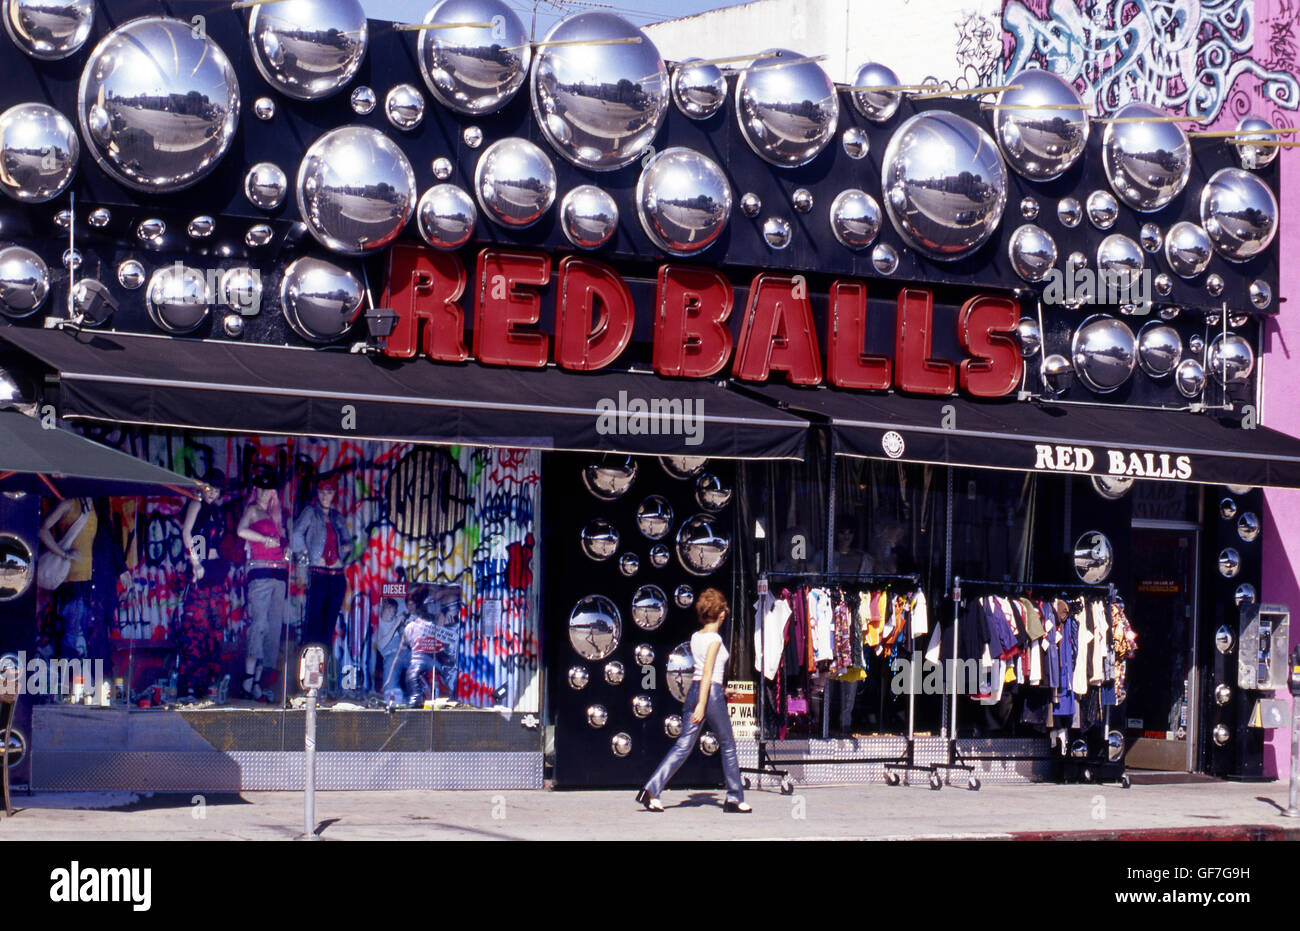 Red Balls on Melrose Ave. in West Hollywood circa 1980s Stock Photo